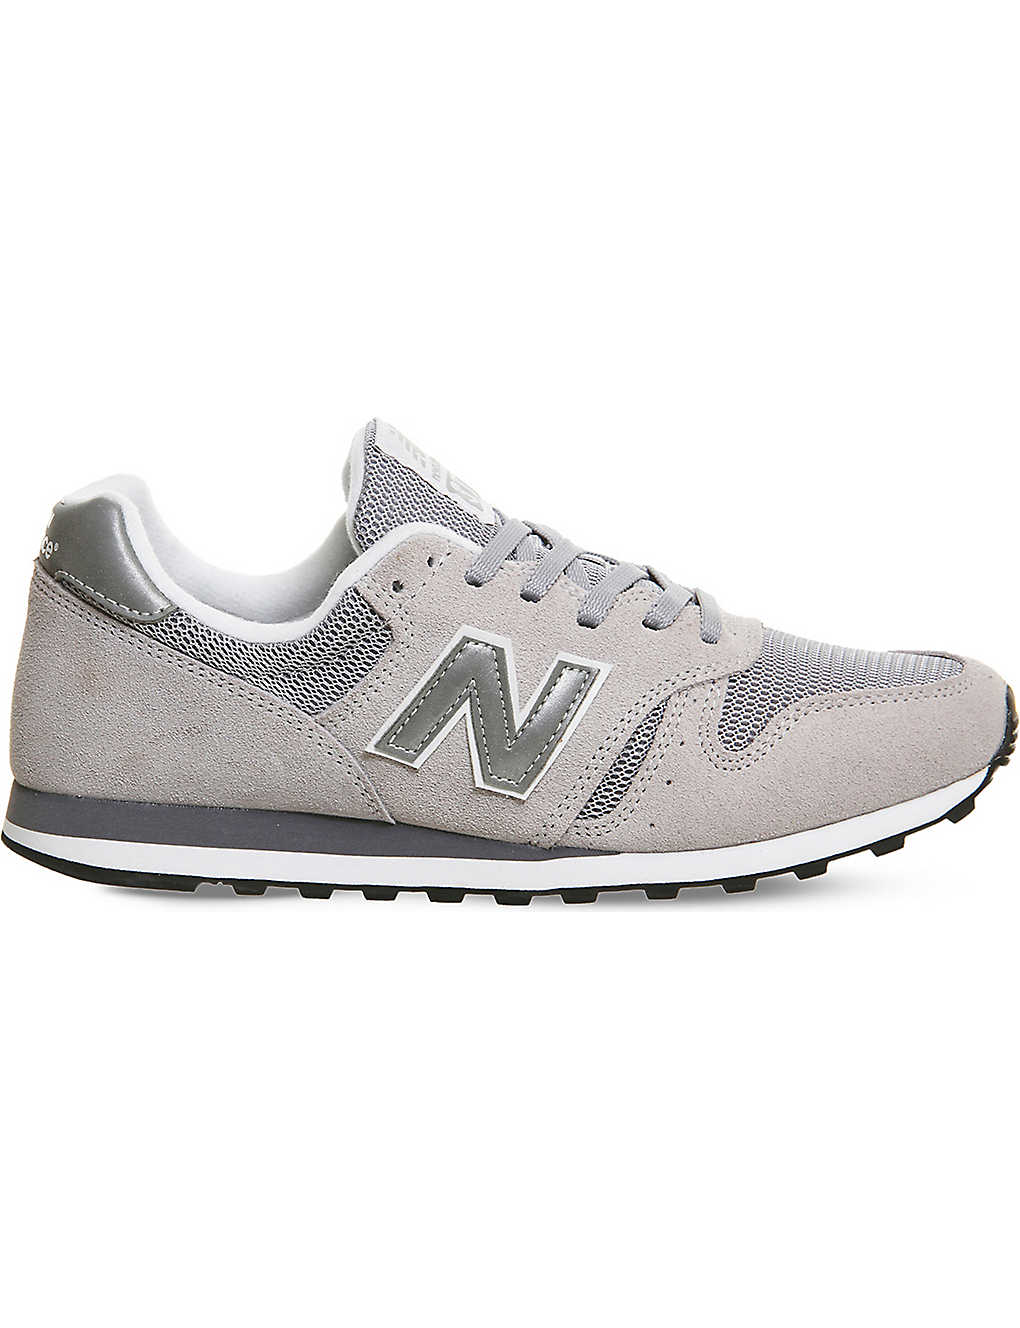 nouveau style ff081 435ae NEW BALANCE - M373 suede and mesh trainers | Selfridges.com